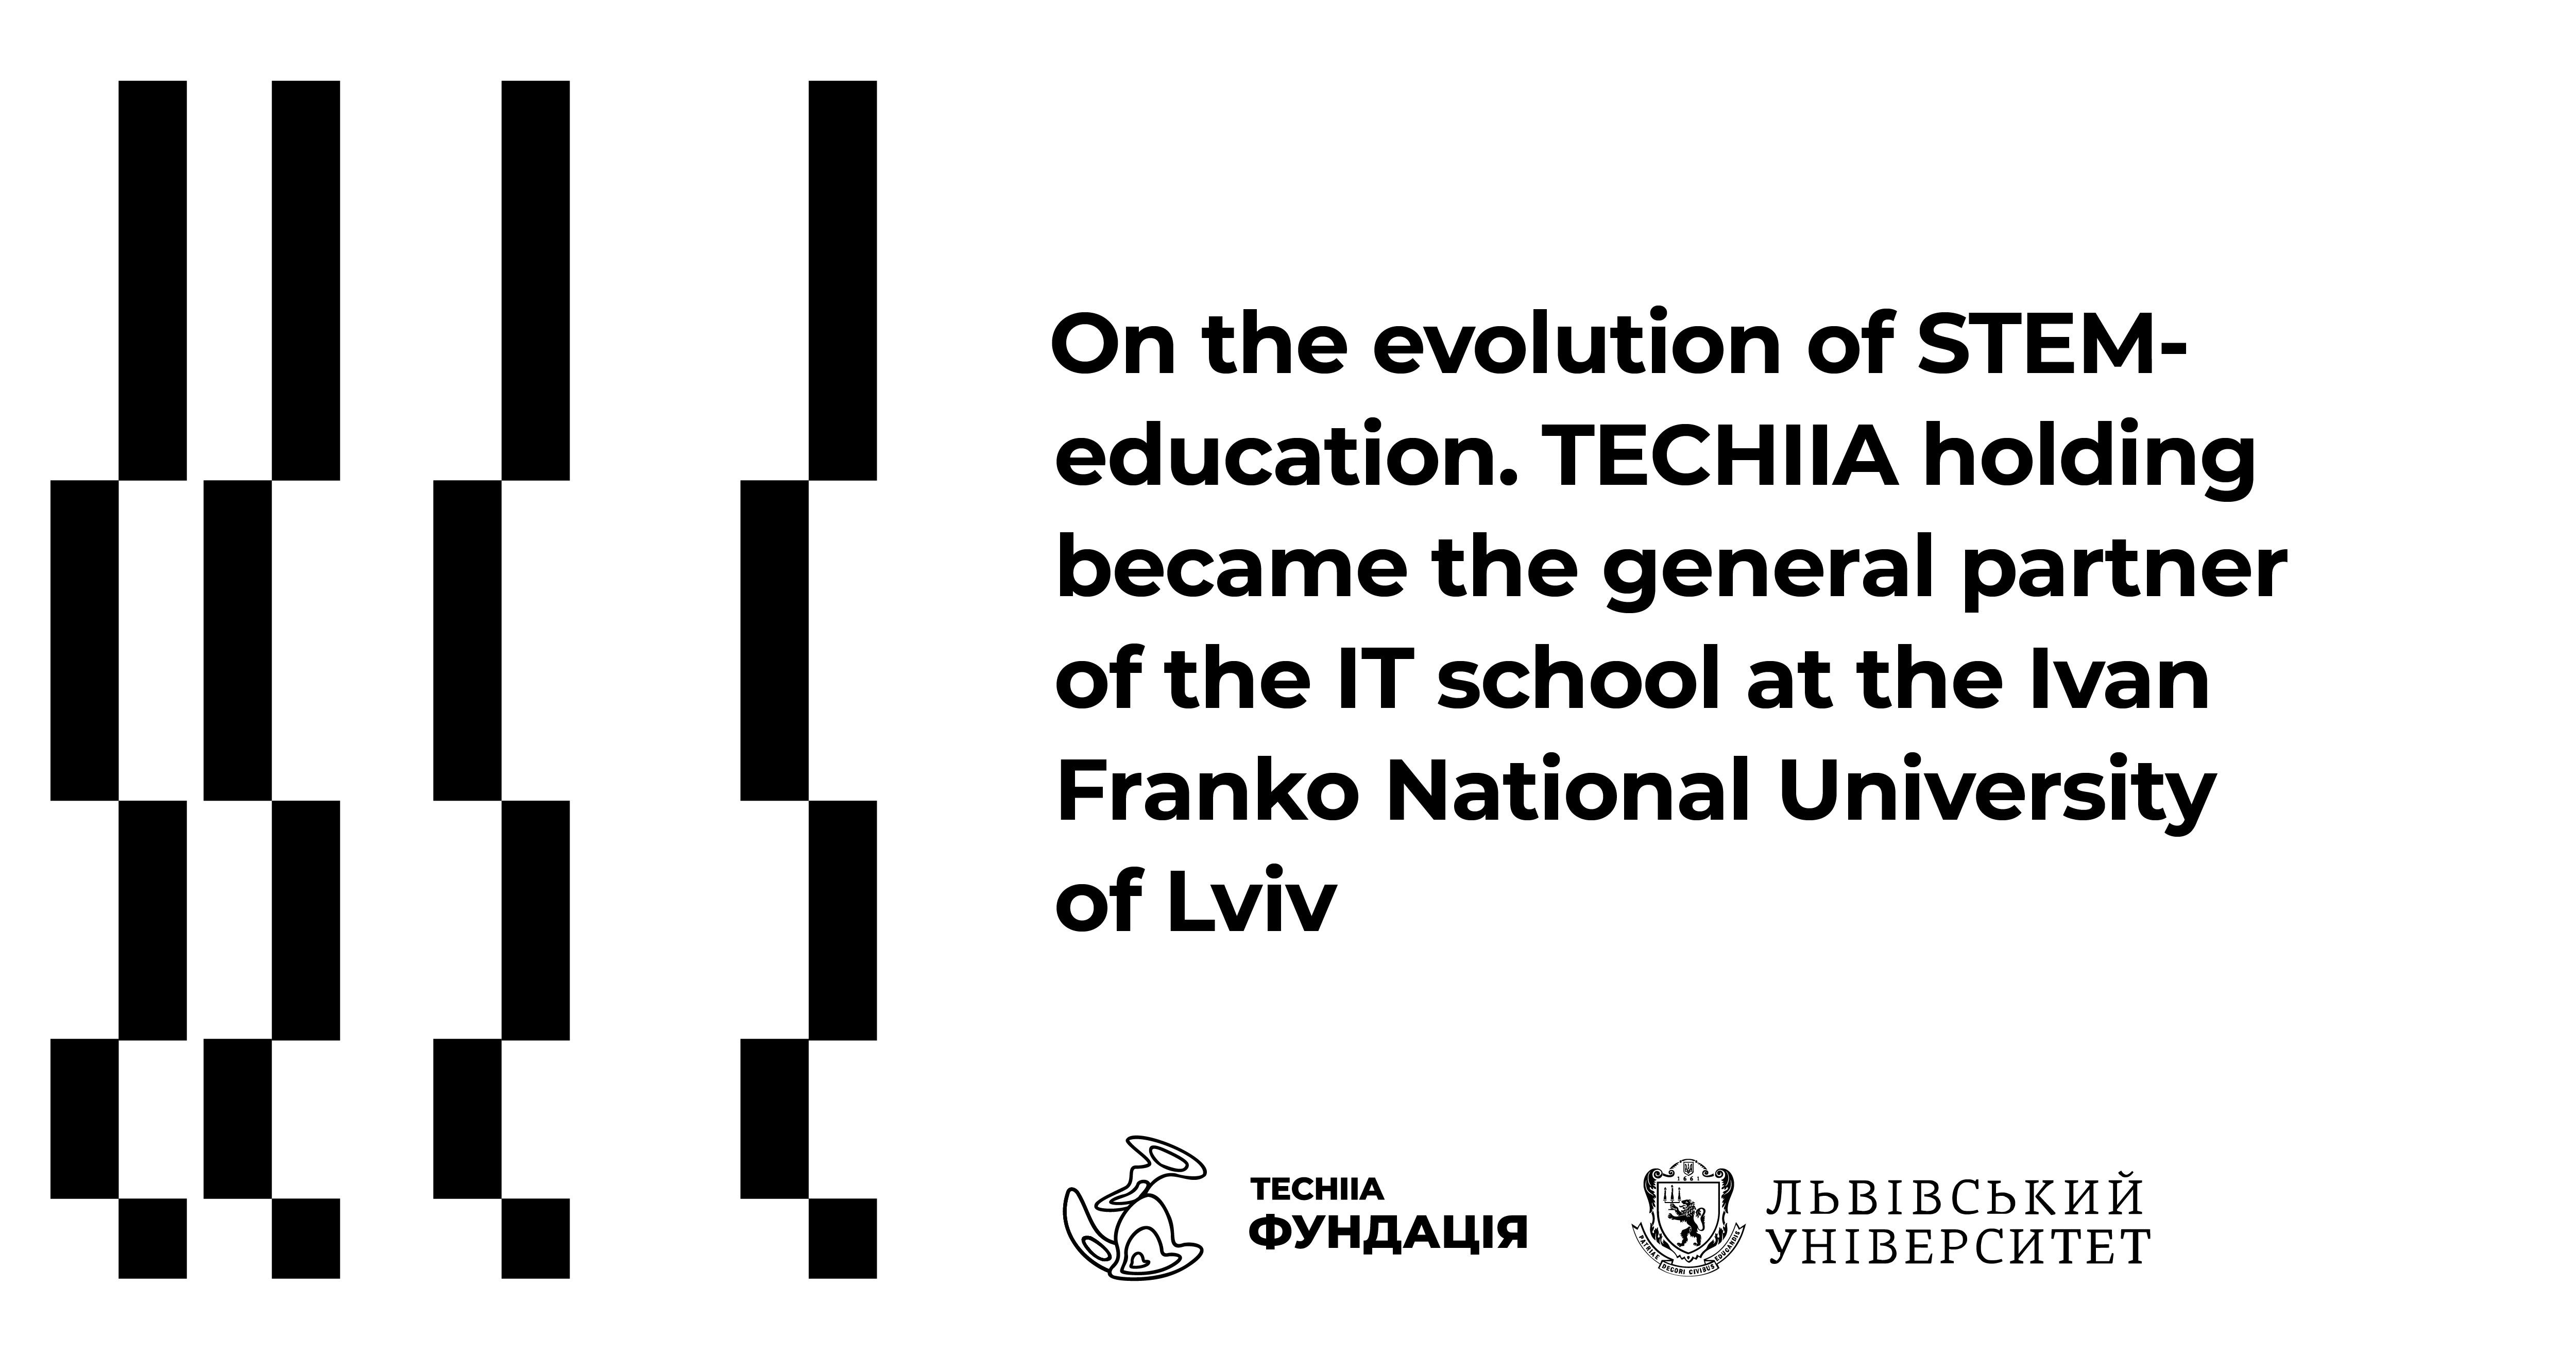 On the evolution of STEM-education. TECHIIA holding became the general partner of the IT school at the Ivan Franko National University of Lviv